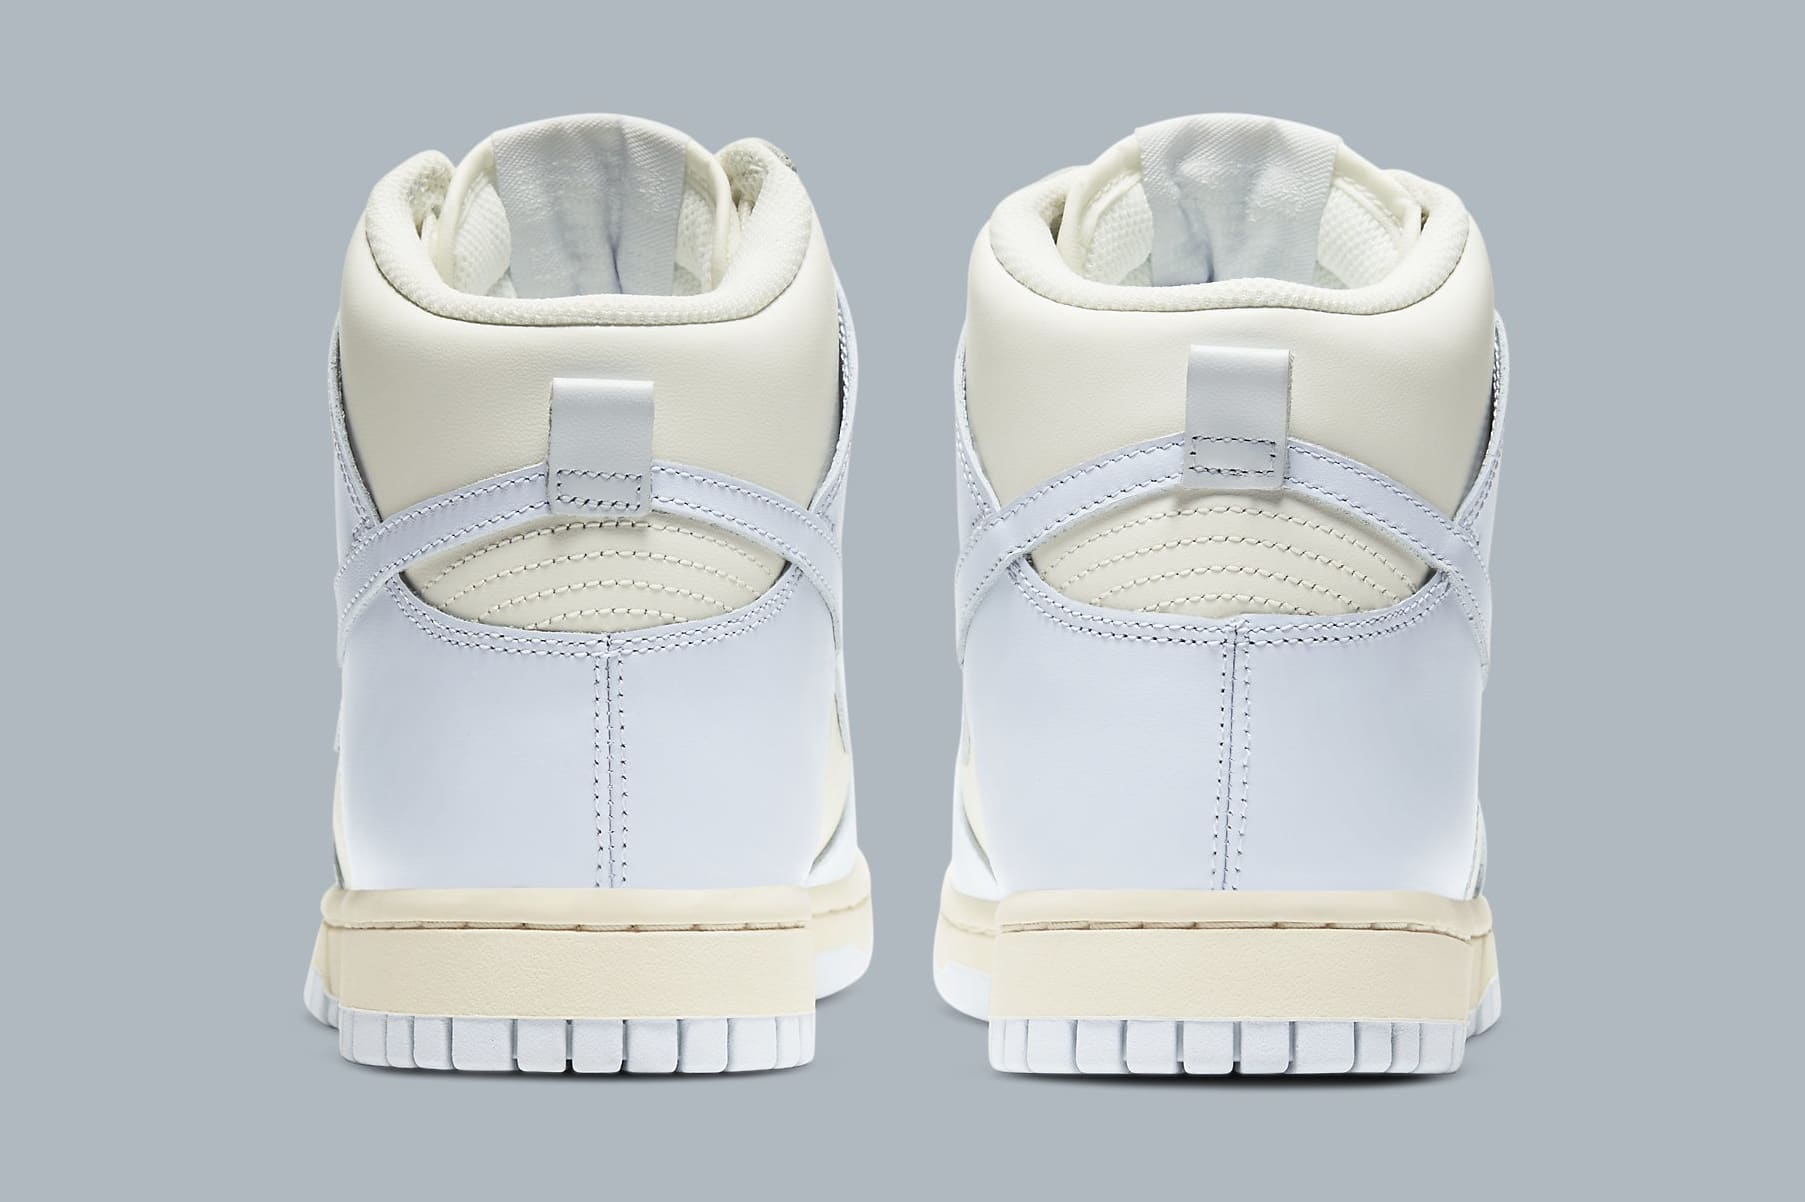 Nike Dunk High Women's 'Pale Ivory' DD1869-102 Heel